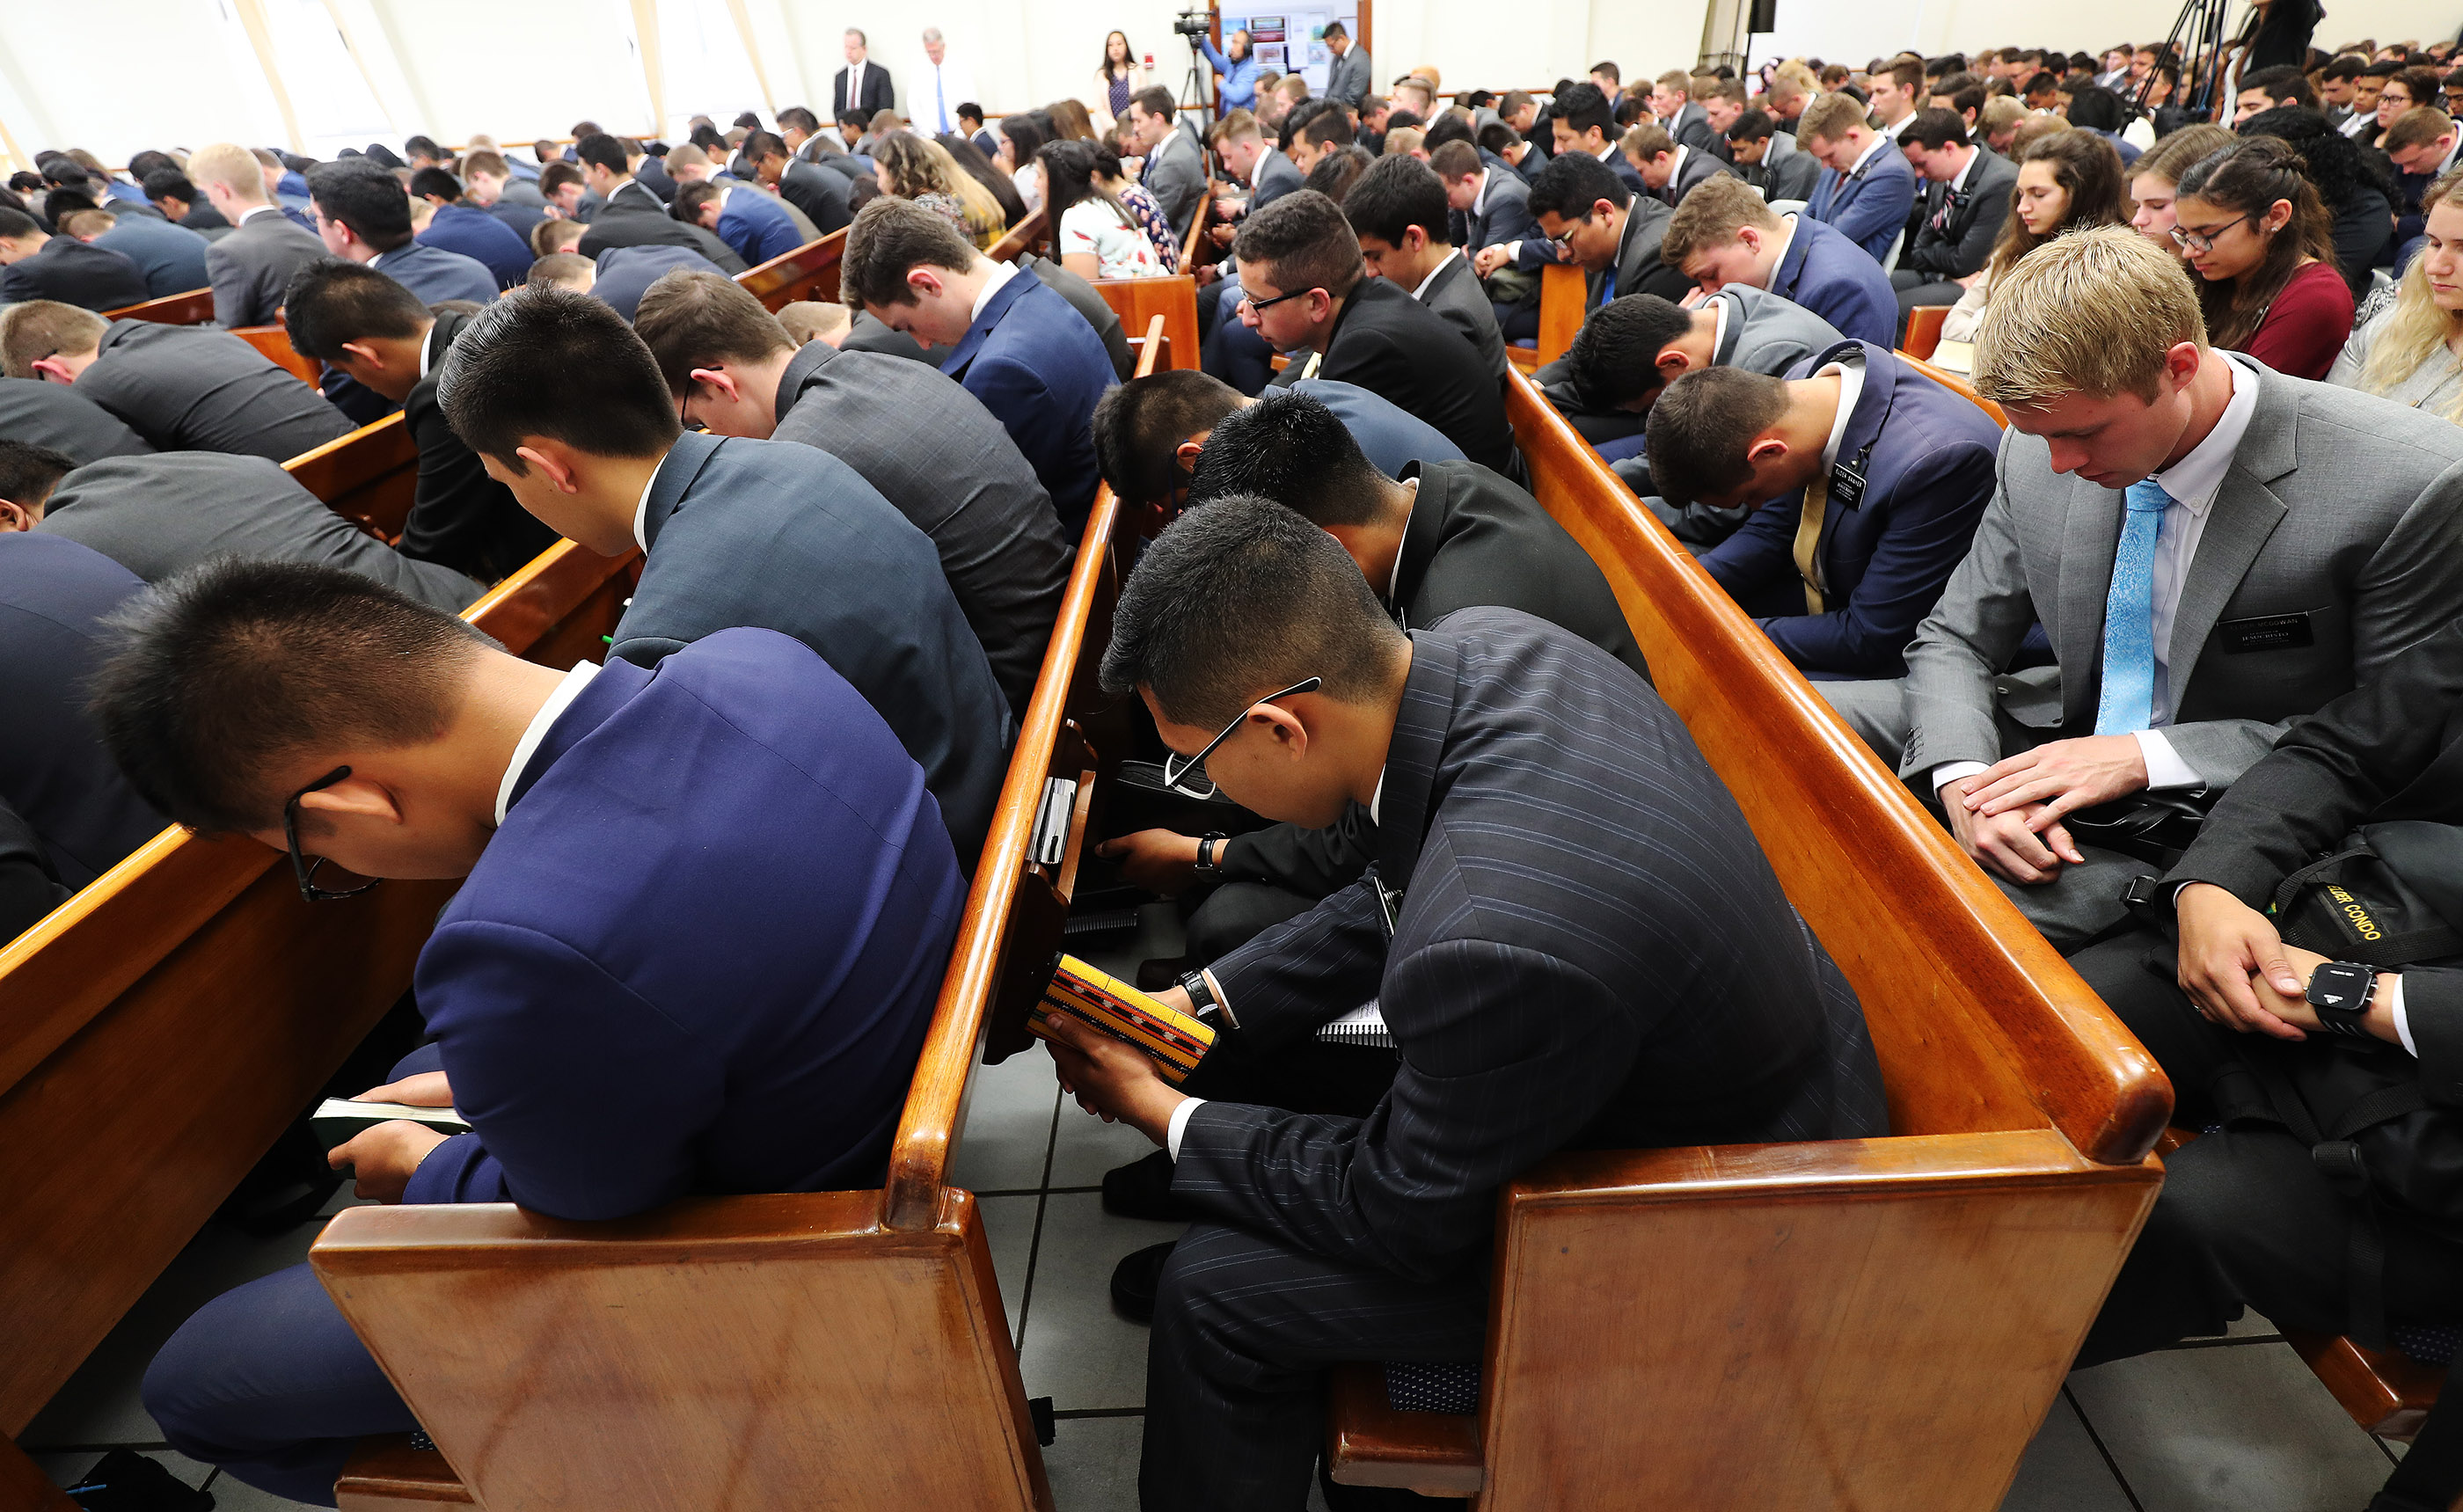 Missionaries listen to the prayer during meeting with President Russell M. Nelson of The Church of Jesus Christ of Latter-day Saints and Elder Gary E. Stevenson of the Quorum of the Twelve Apostles in Lima, Peru, on Oct. 20, 2018.